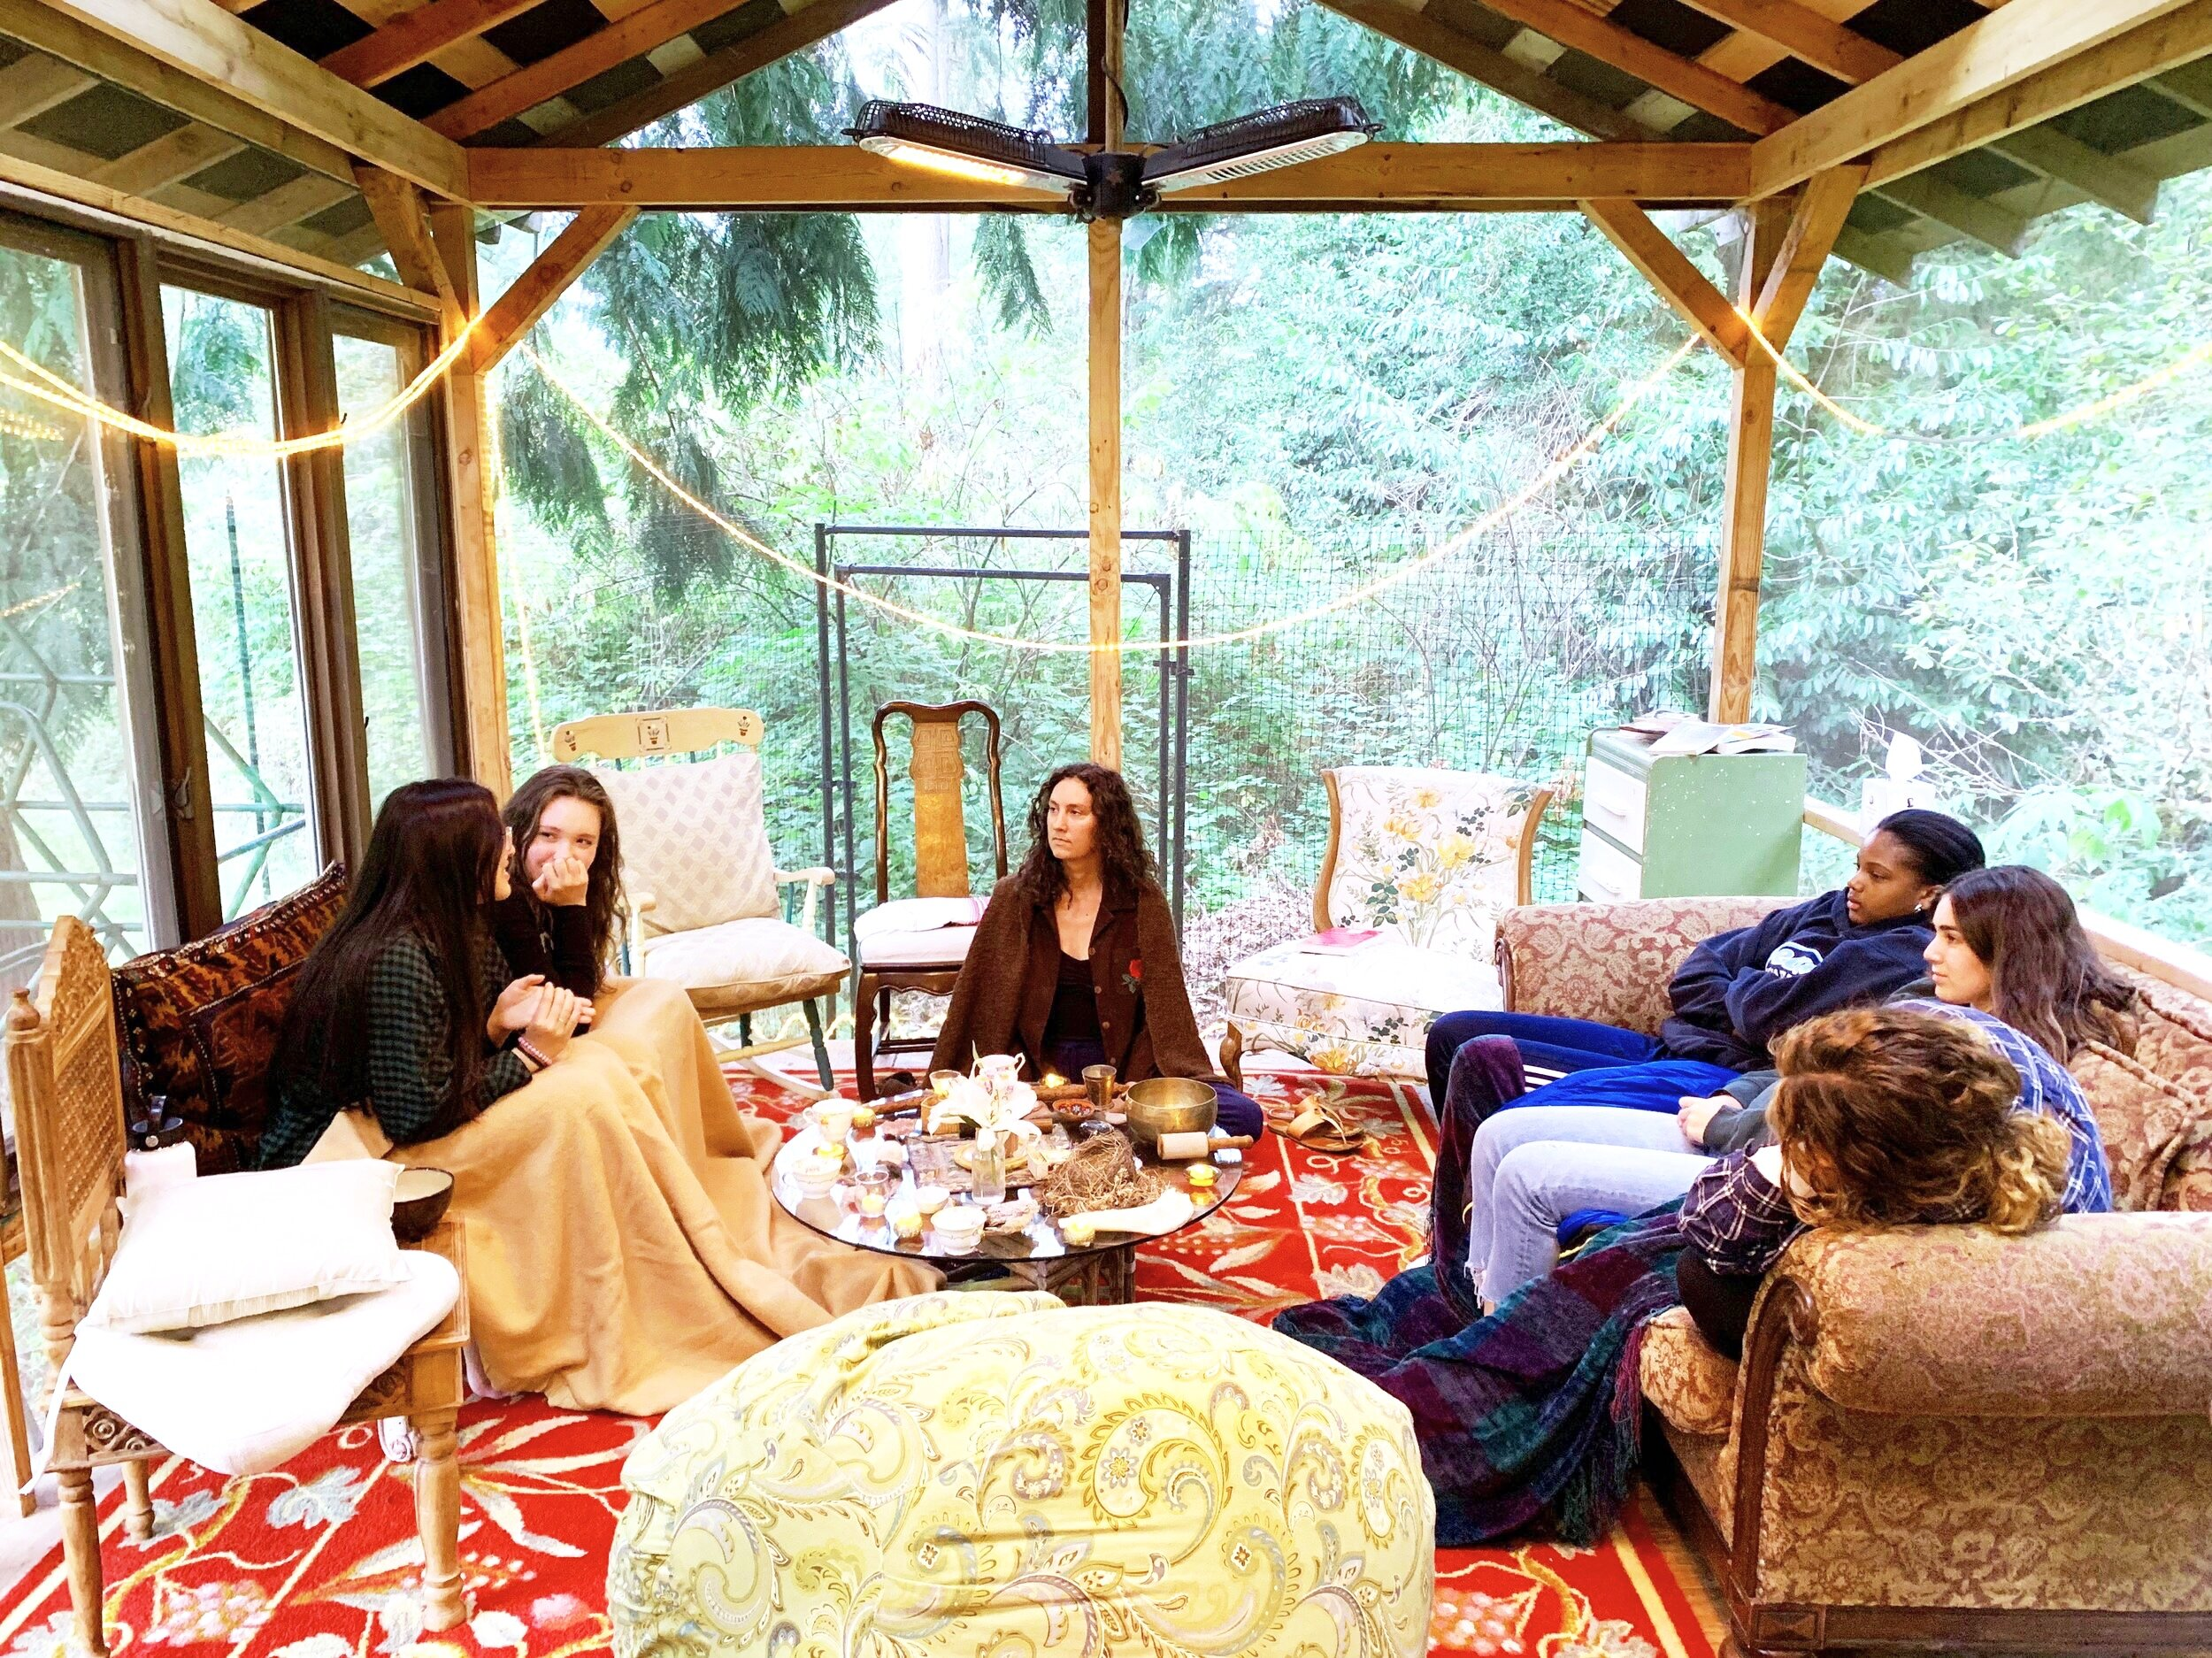 """Teen circles can happen wherever you want to meet up and sit in circle. They can take place on a nature hike, in a school room, in a church or temple — anywhere you can create a private space and carve out time. Each year, the Seattle Girls Circle holds a summer sleepover in a little cabin in the woods. We set up a central table full of meaningful objects: candles, shells, bones, precious stones, feathers, bowls of water and Earth, and Tibetan singing bowls. These """"things"""" honor and symbolize that we're establishing a sacred space and time — setting a symbolic boundary to distinguish that this will not be a place for the """"normal"""" way we interact with each other, the normal conversations. Instead we are establishing that this will be a time for a deeper form of listening and sharing of our real selves, vulnerable selves, the selves in us that need to be seen and heard in order to grow and become even more our true selves in the world. In this safe space, we can talk about the hard issues — all the isms we experience as individuals in this world and grow our capacities for compassion for each other and ourselves. We deeply inform each other."""